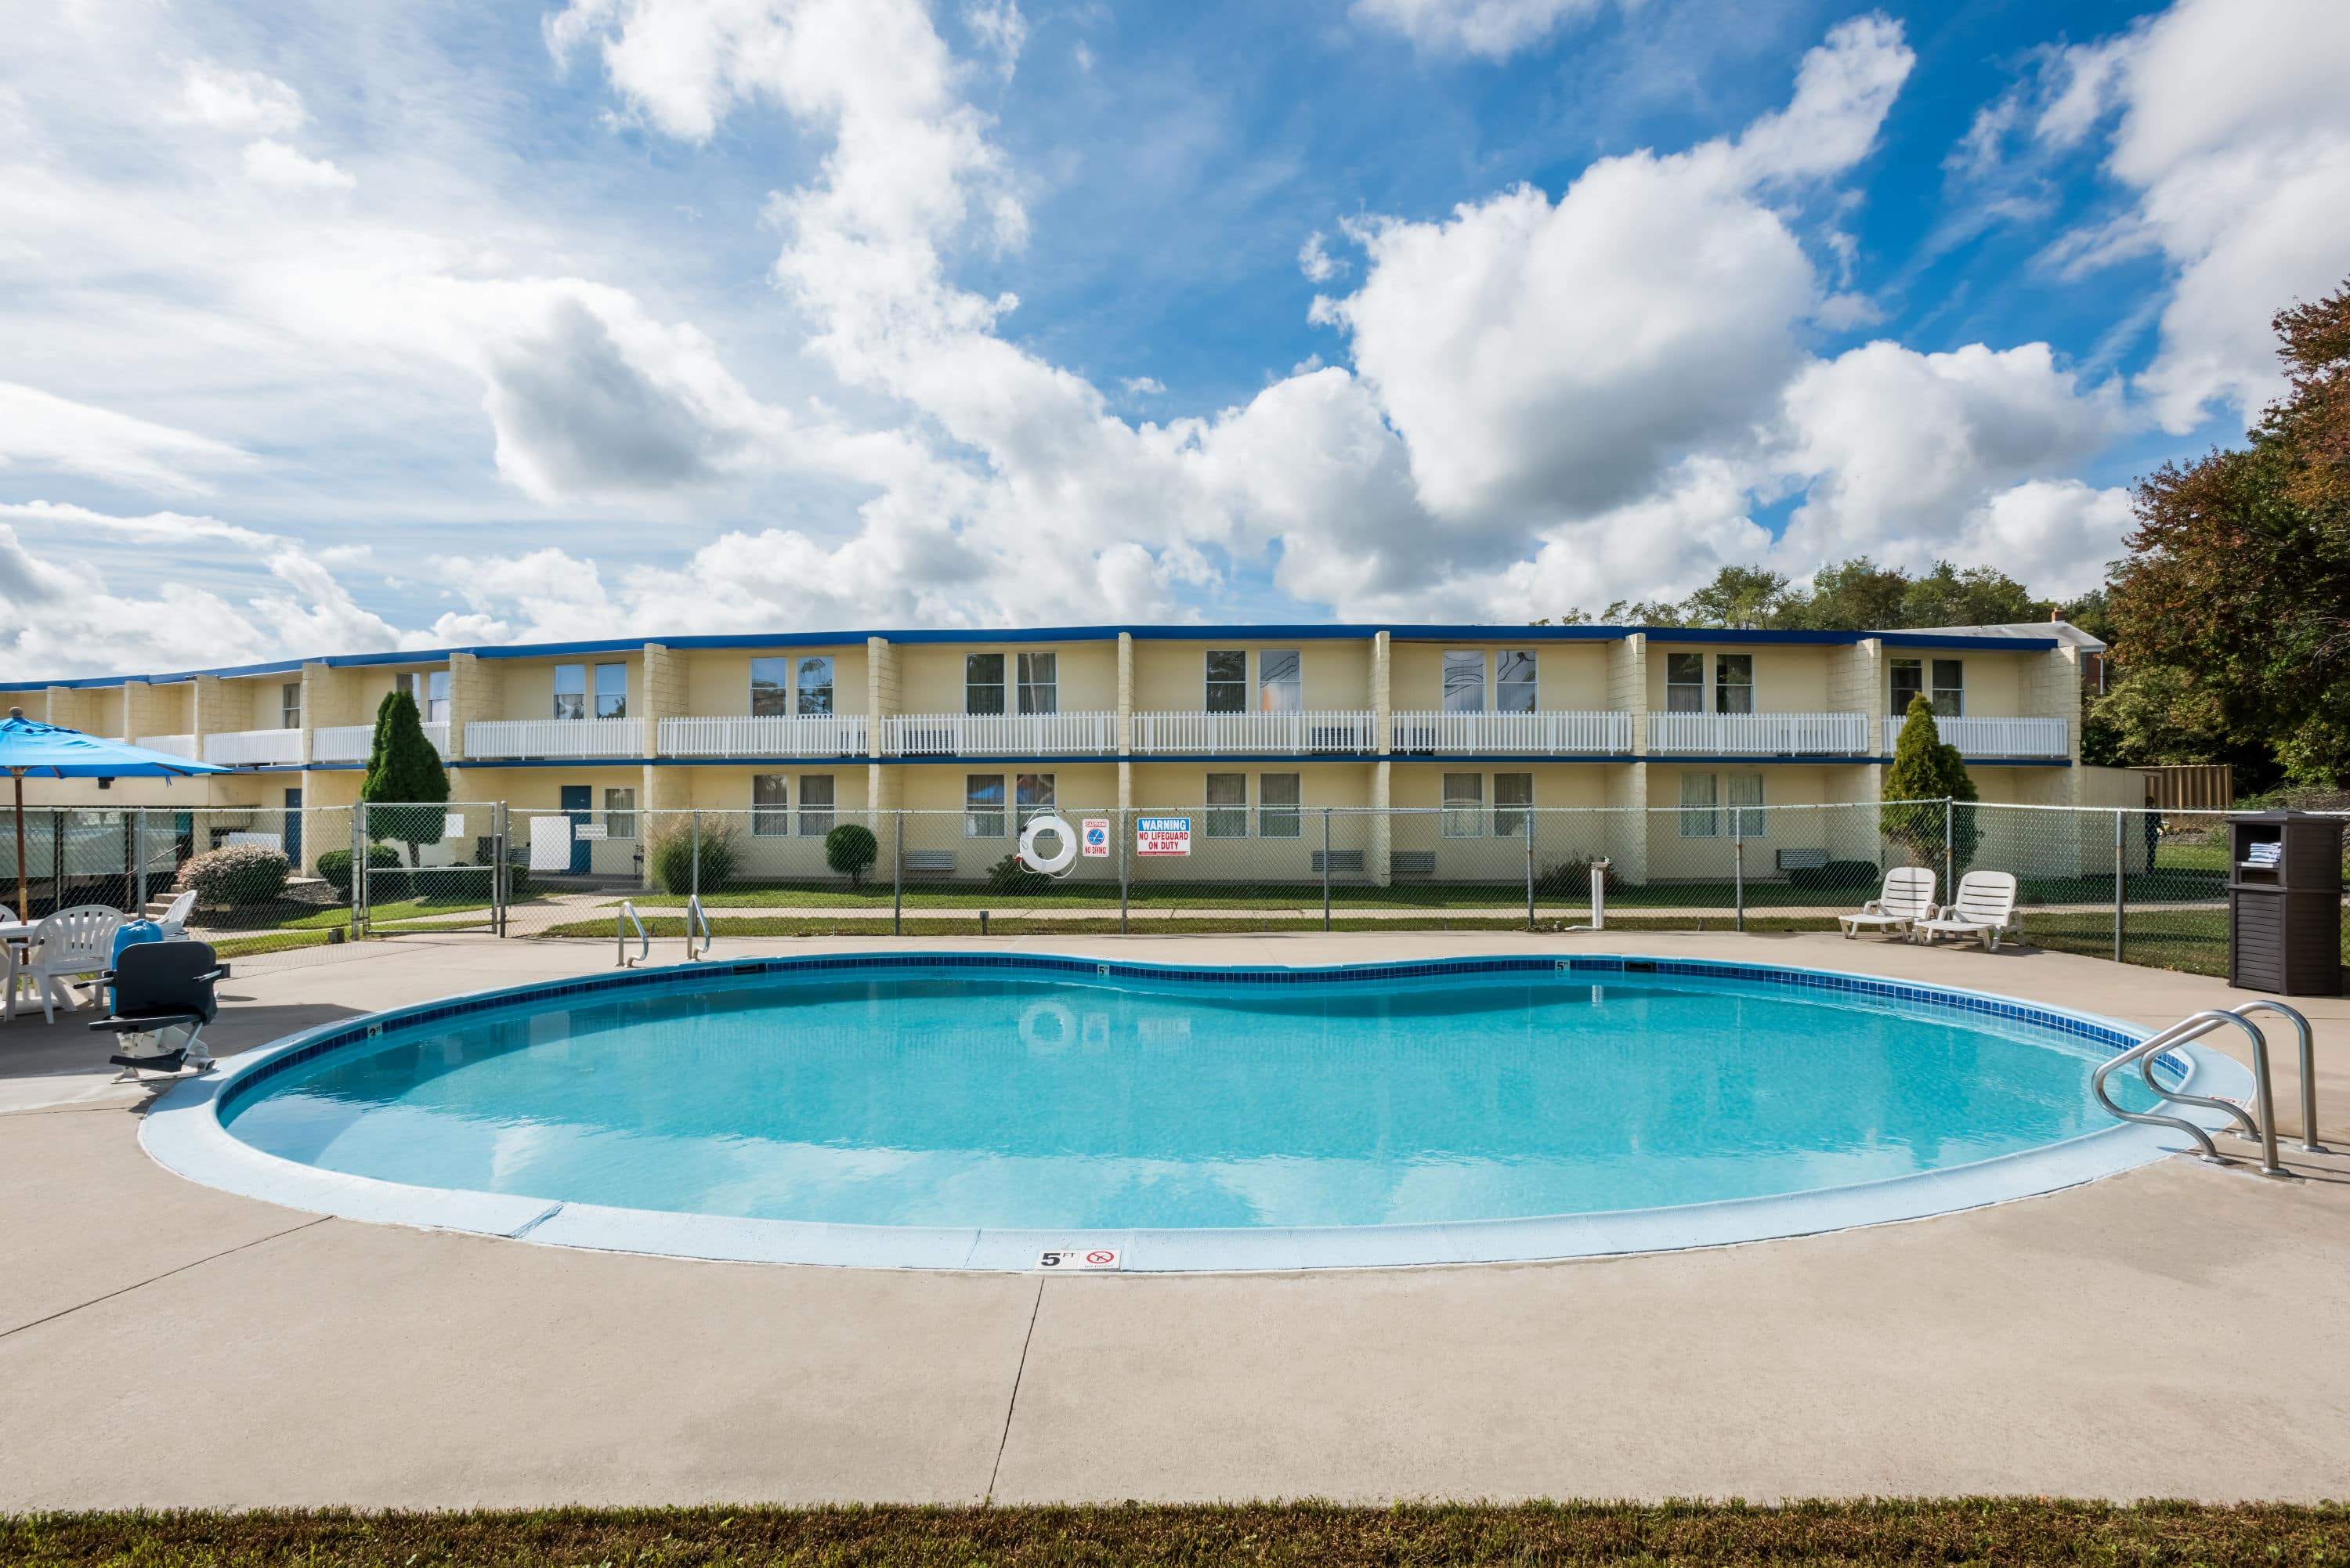 Perfect Pool At The Travelodge Hotel Aberdeen In Maryland With Hotels Near Wa